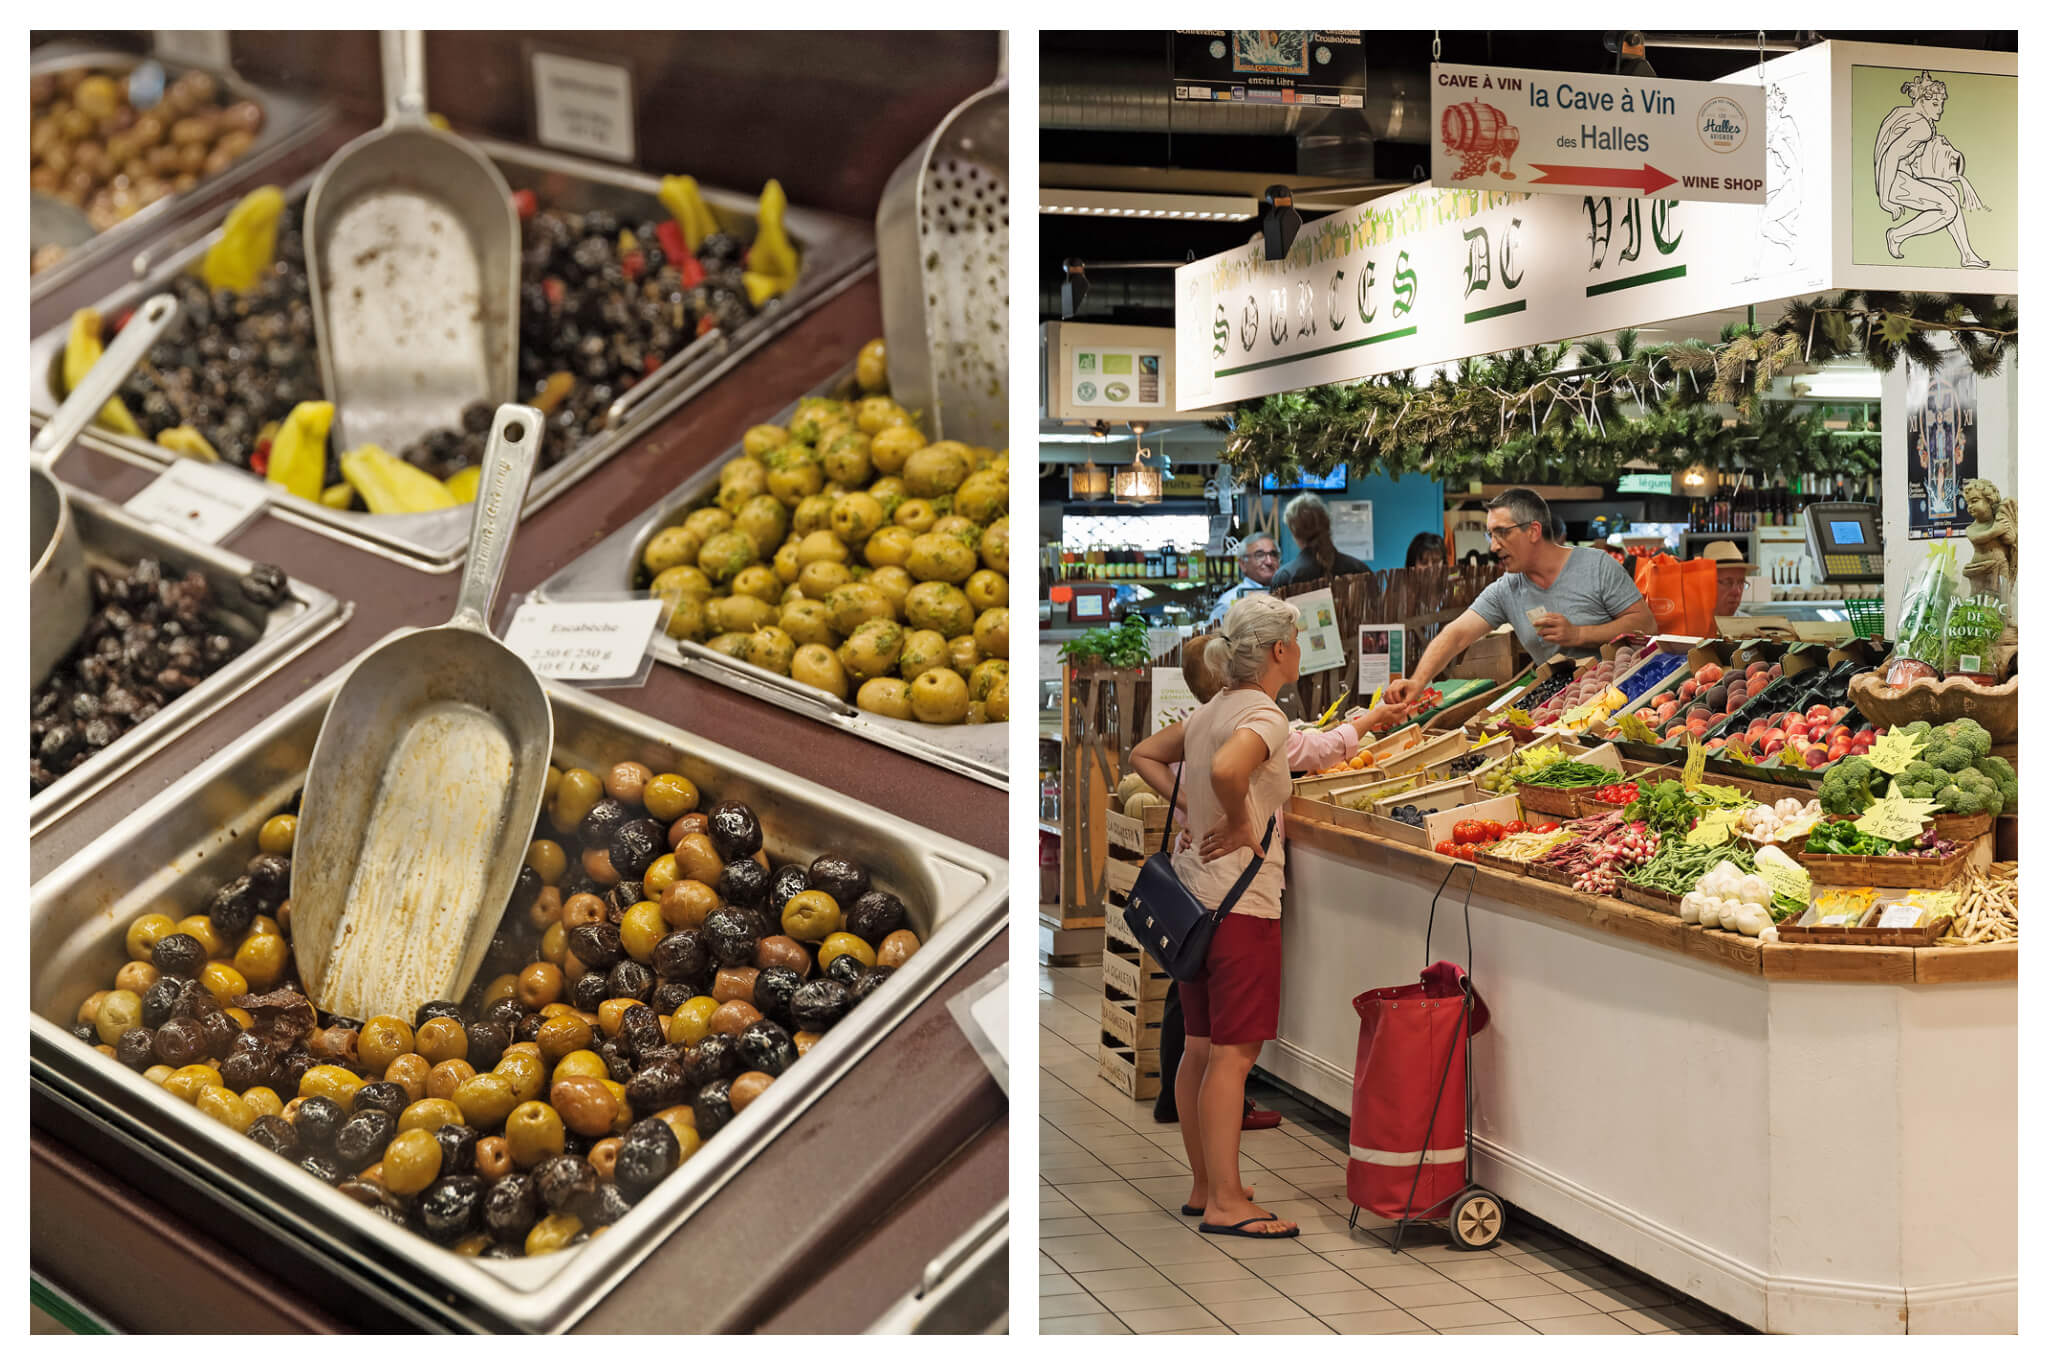 Left: various olives at a market. Right: two women purchasing goods from a green grocer at a market.